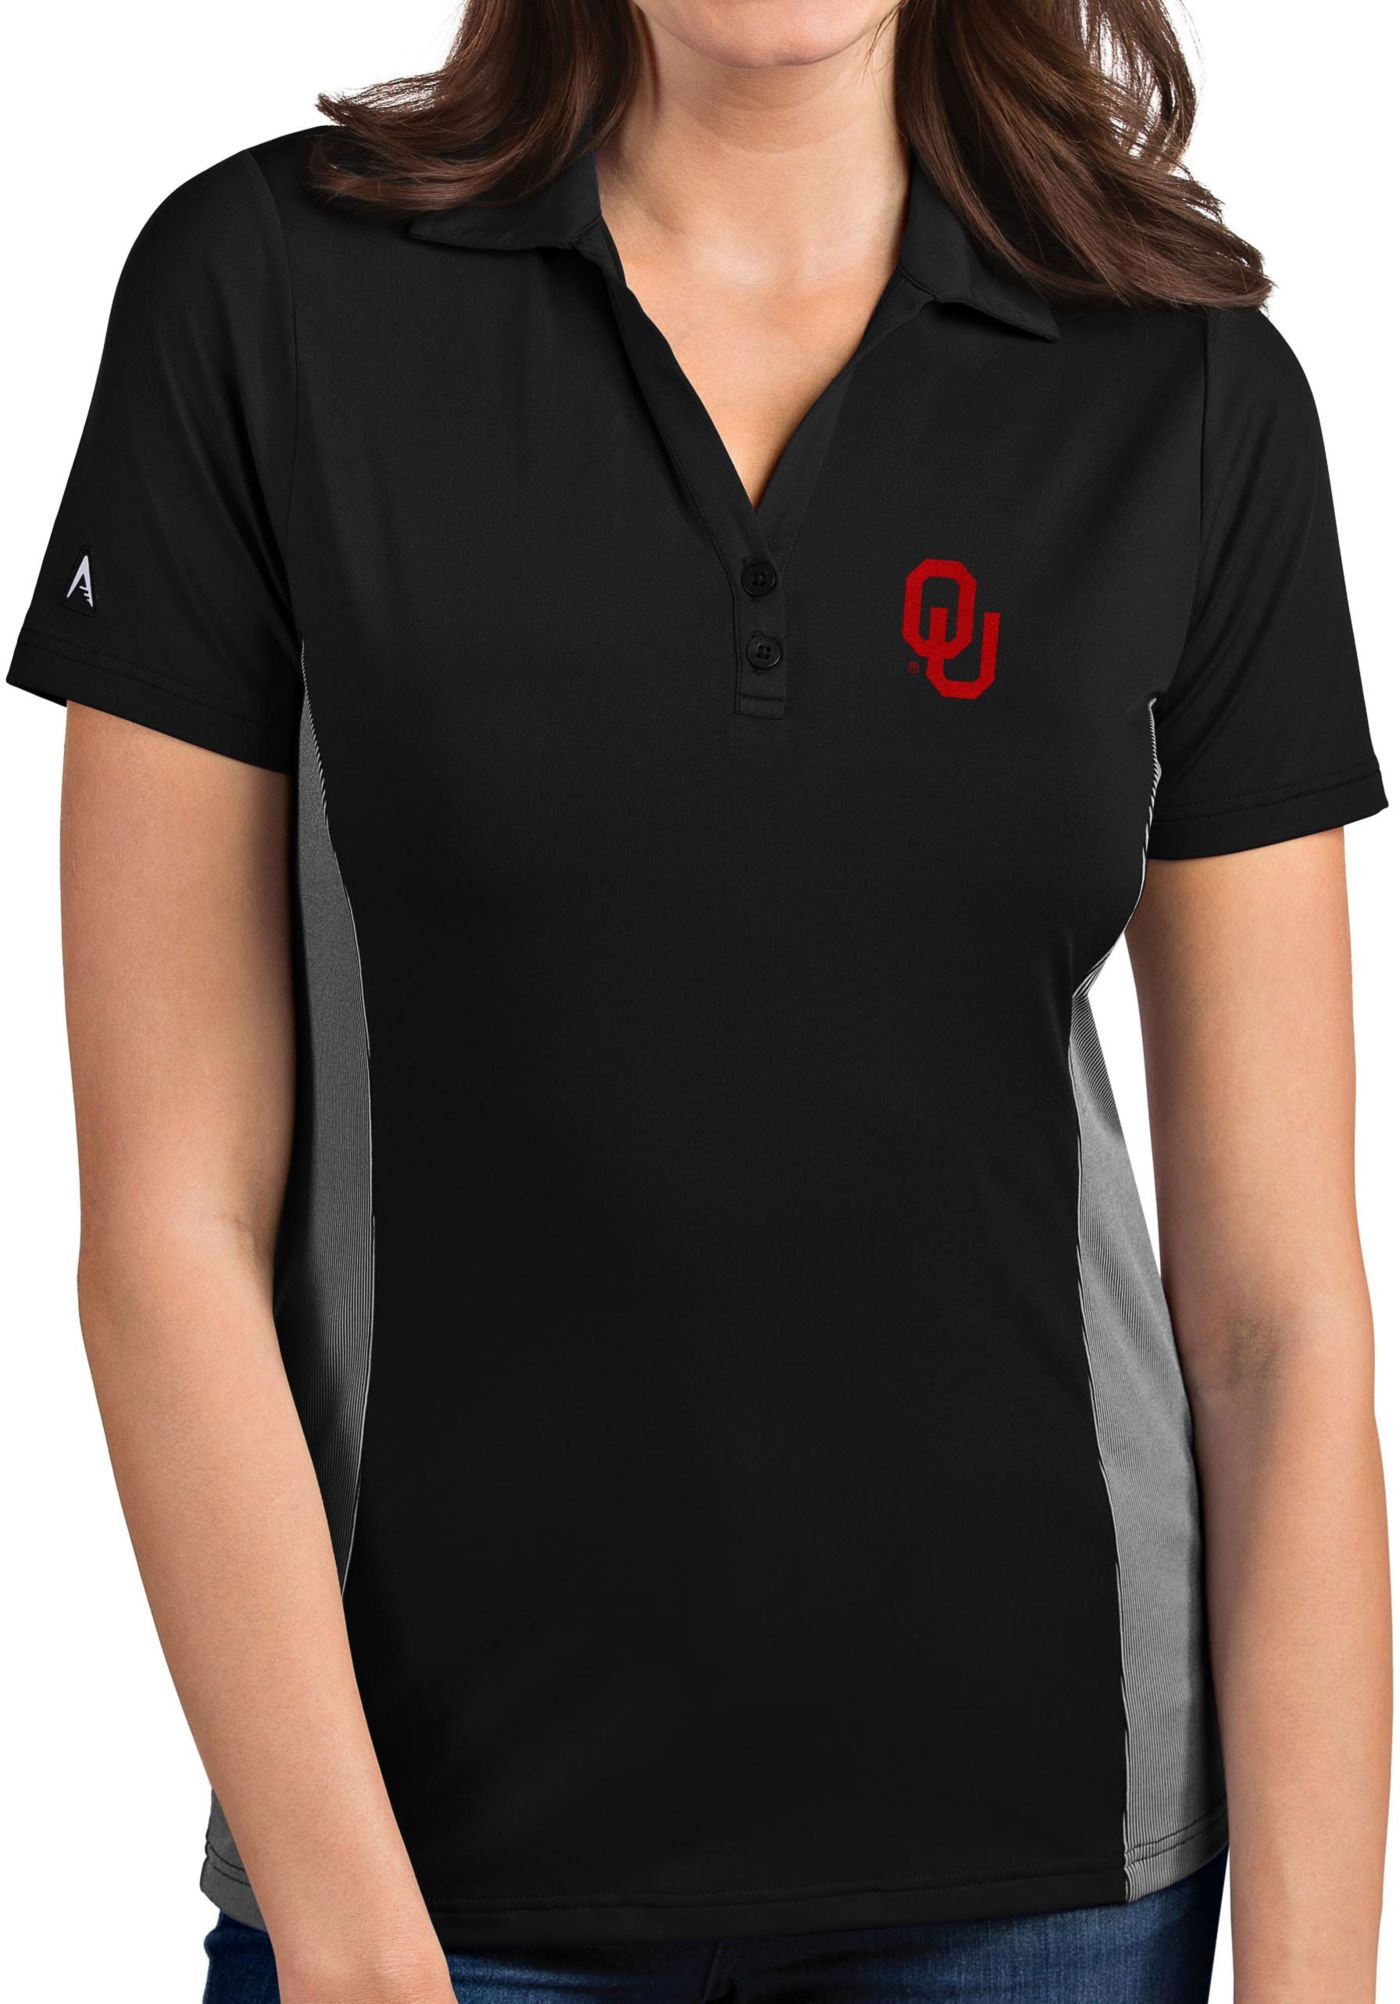 Antigua Women's Oklahoma Sooners Venture Black Polo